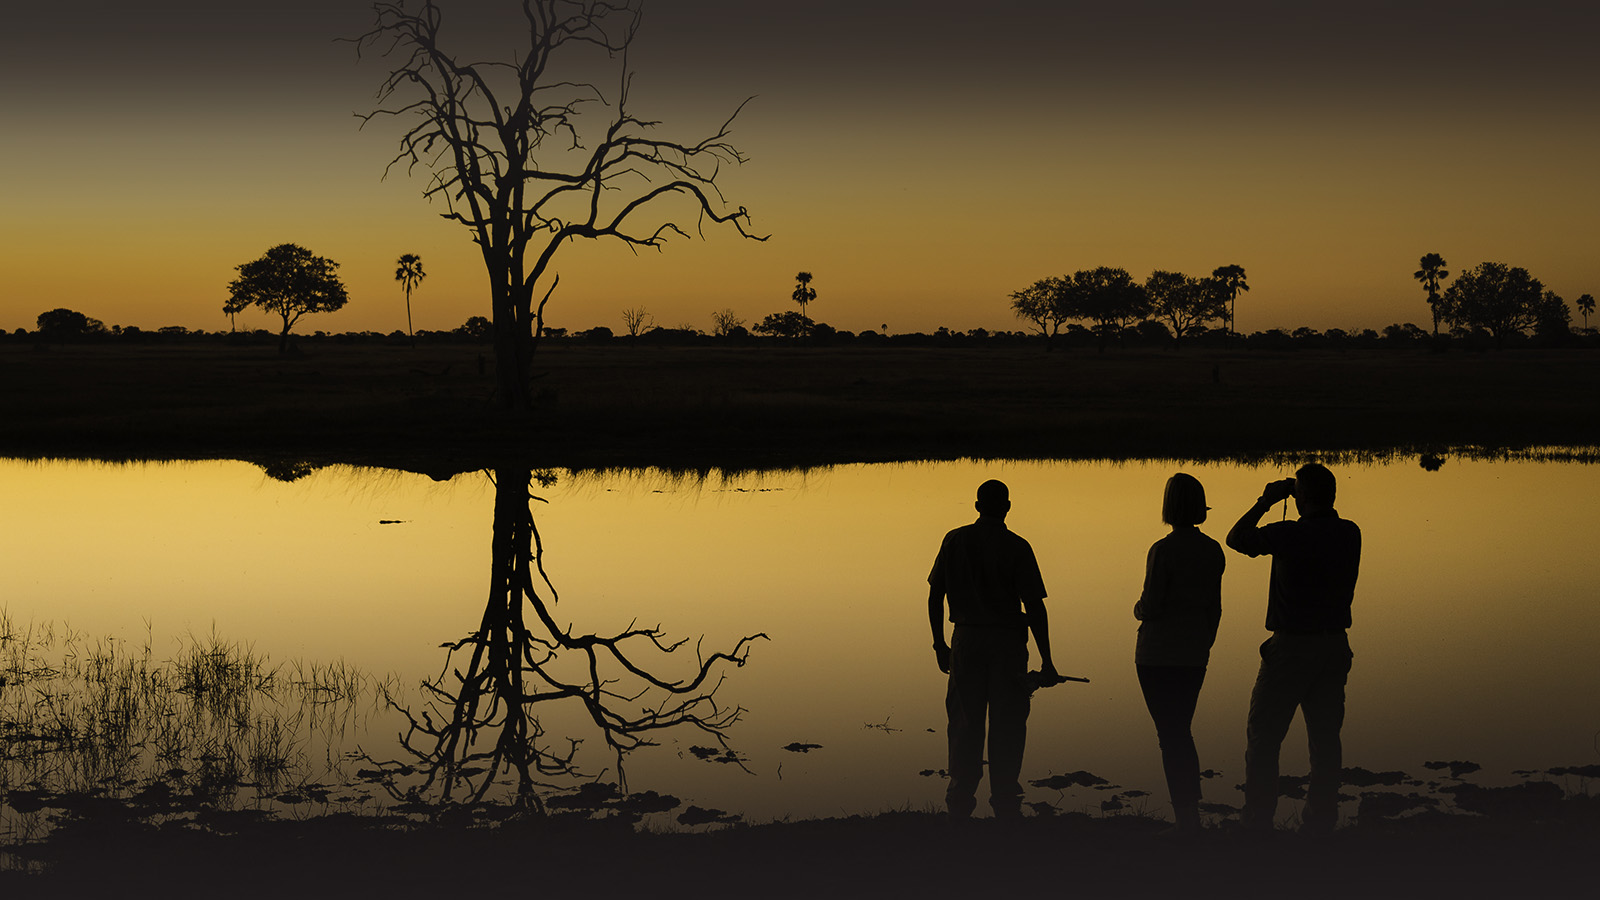 linkwasha camp hwange-national-park-zimbabwe-lodges-luxury-wilderness-sunset